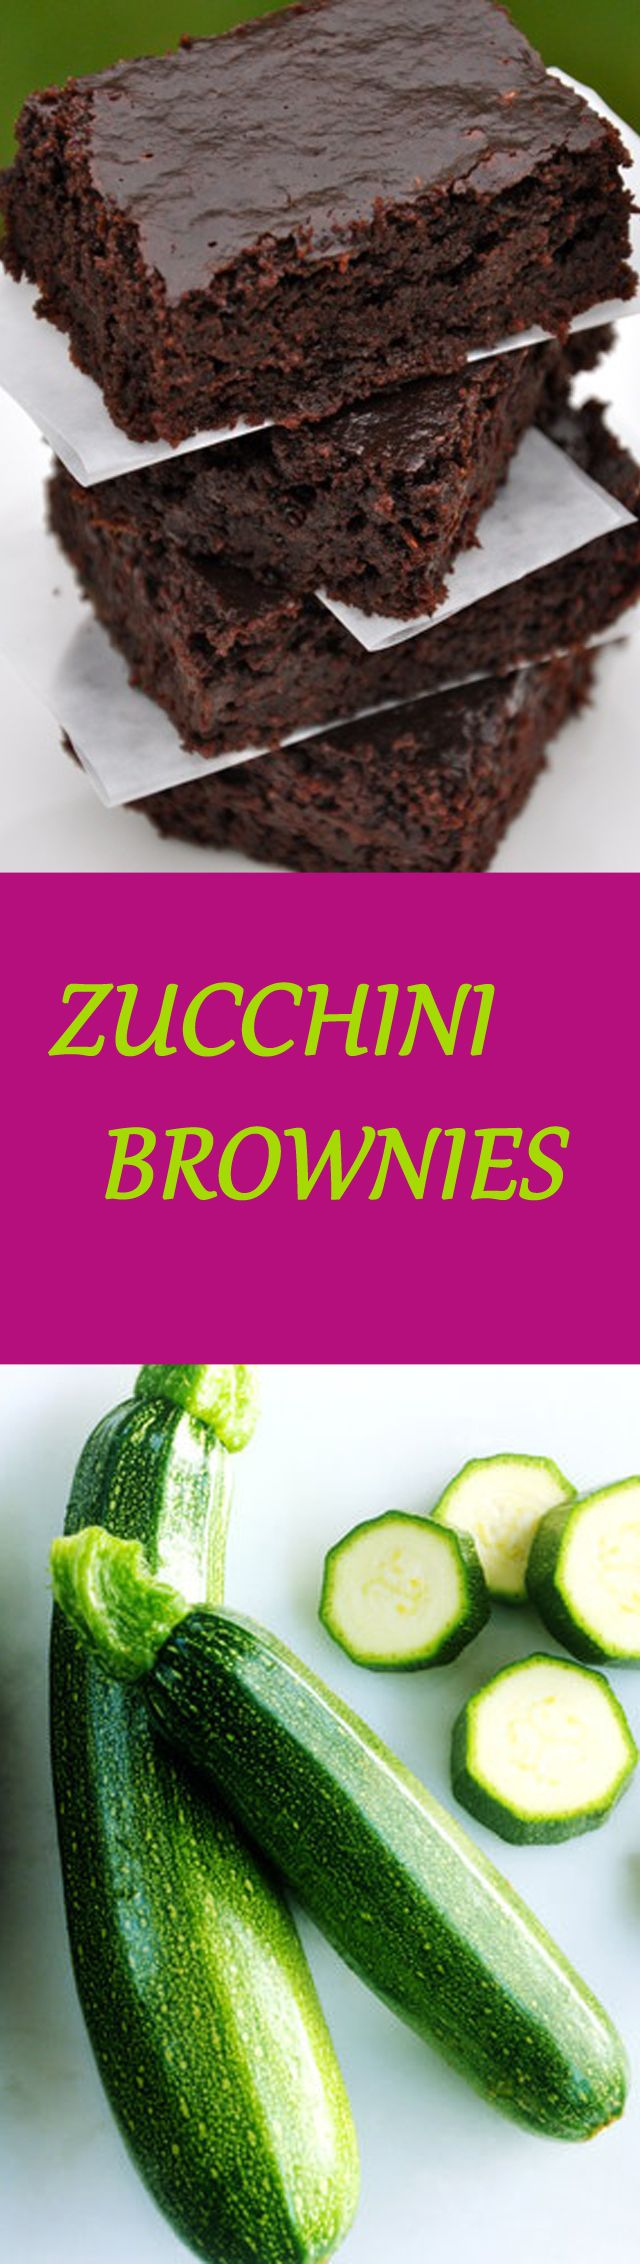 ZUCCHINI BROWNIES Click the image to get the recipe :D